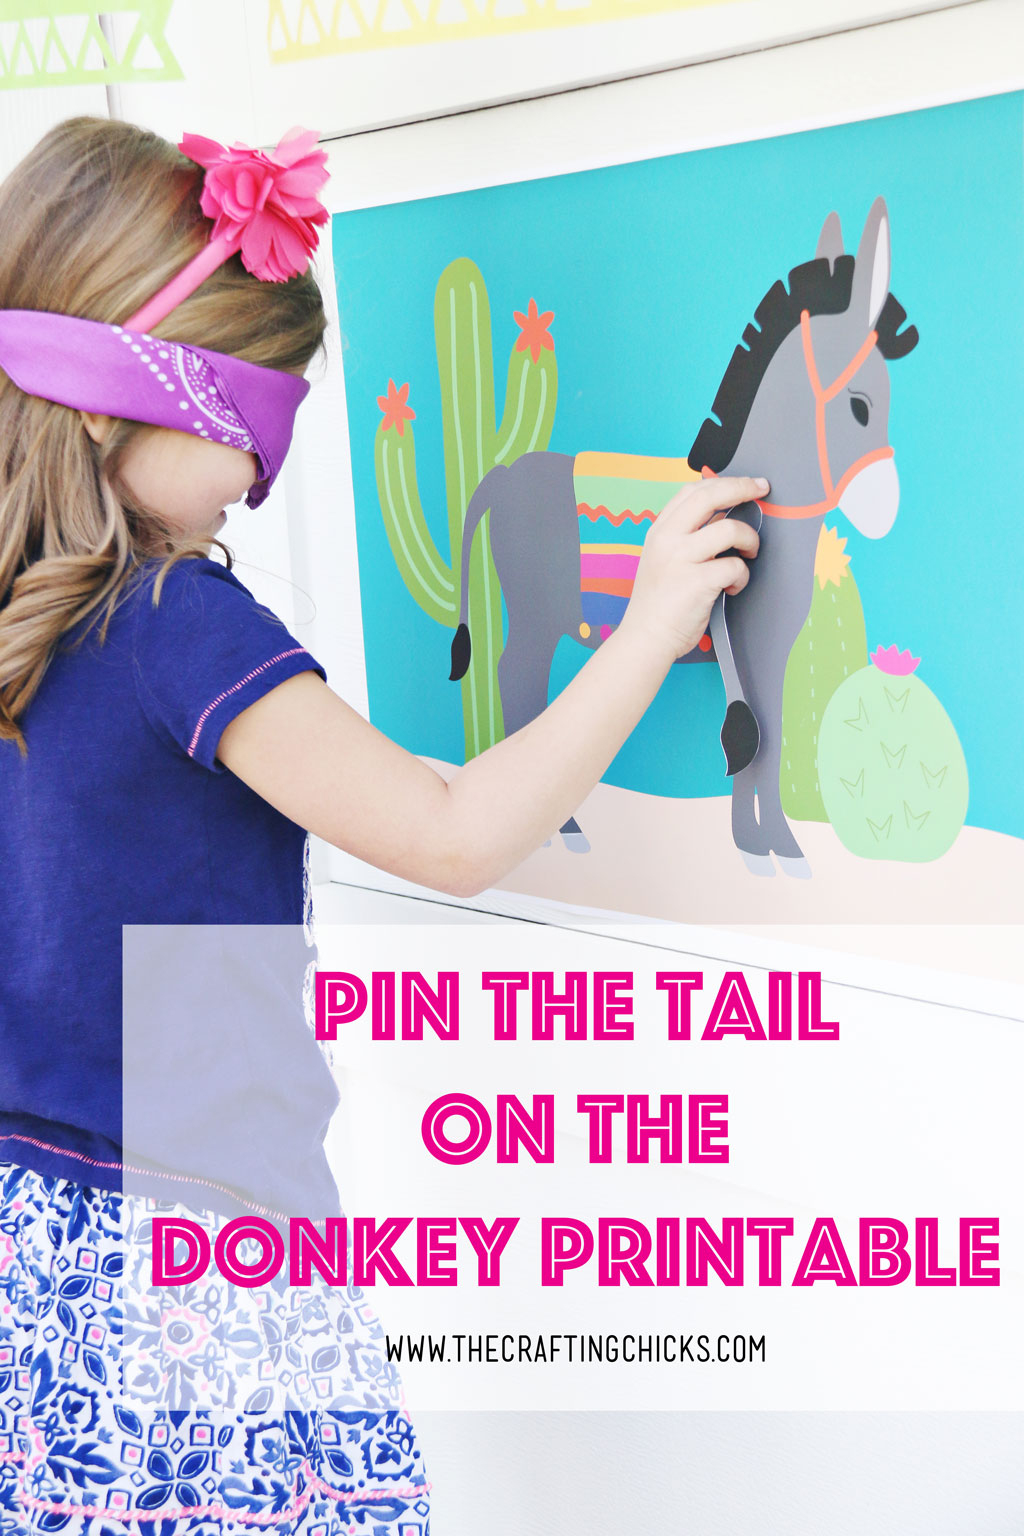 Pin The Tail On The Donkey - The Crafting Chicks - Free Printable Pin The Tail On The Cat